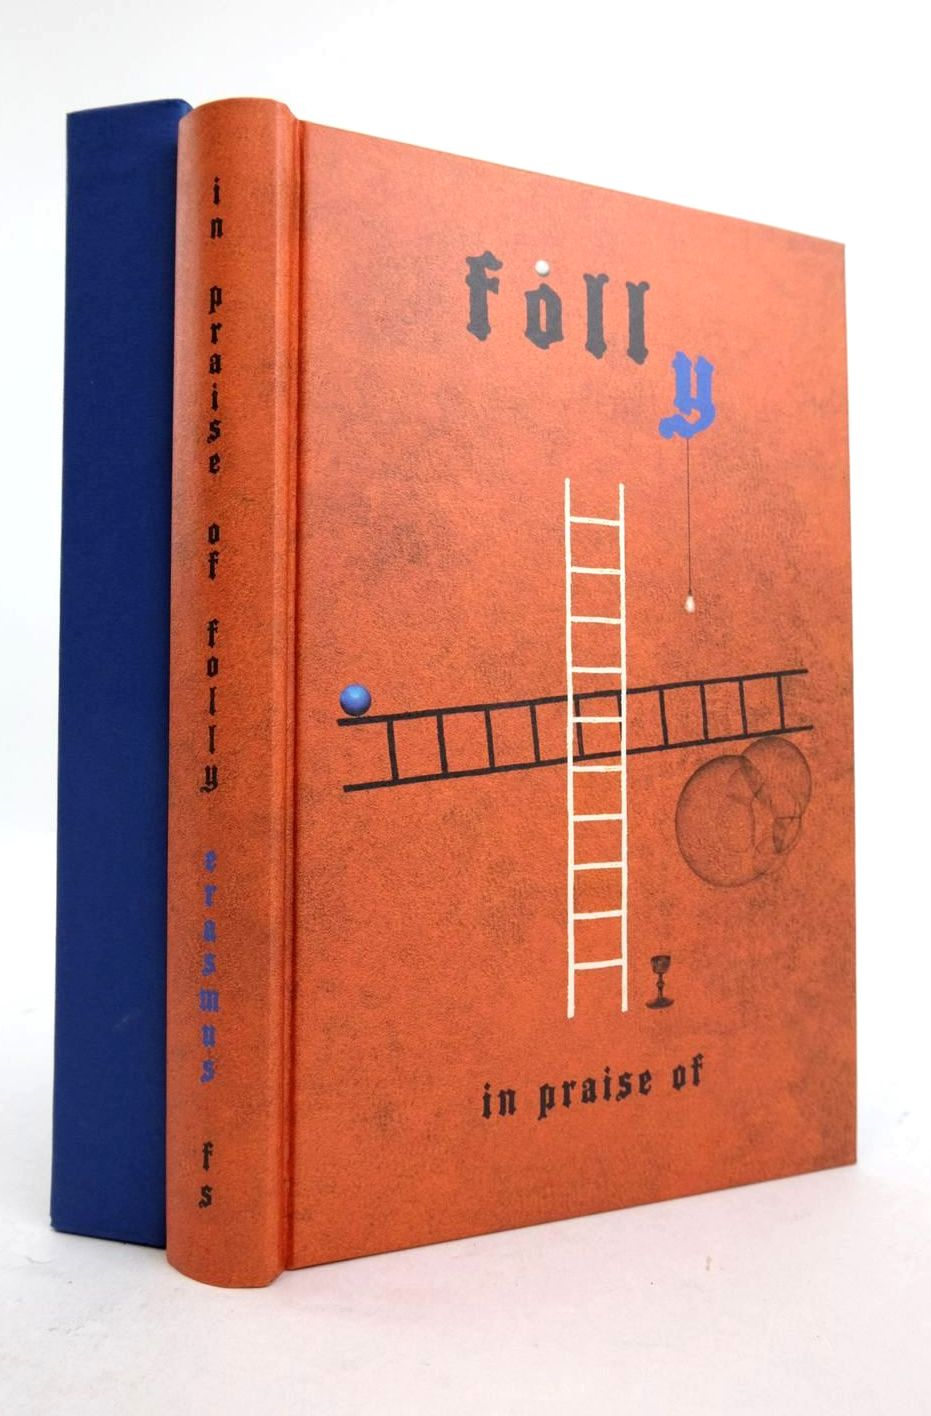 Photo of IN PRAISE OF FOLLY AND LETTER TO MAARTEN VAN DORP 1515 written by Erasmus, Desiderius Duffy, Eamon illustrated by Richardson, Matthew published by Folio Society (STOCK CODE: 1821374)  for sale by Stella & Rose's Books